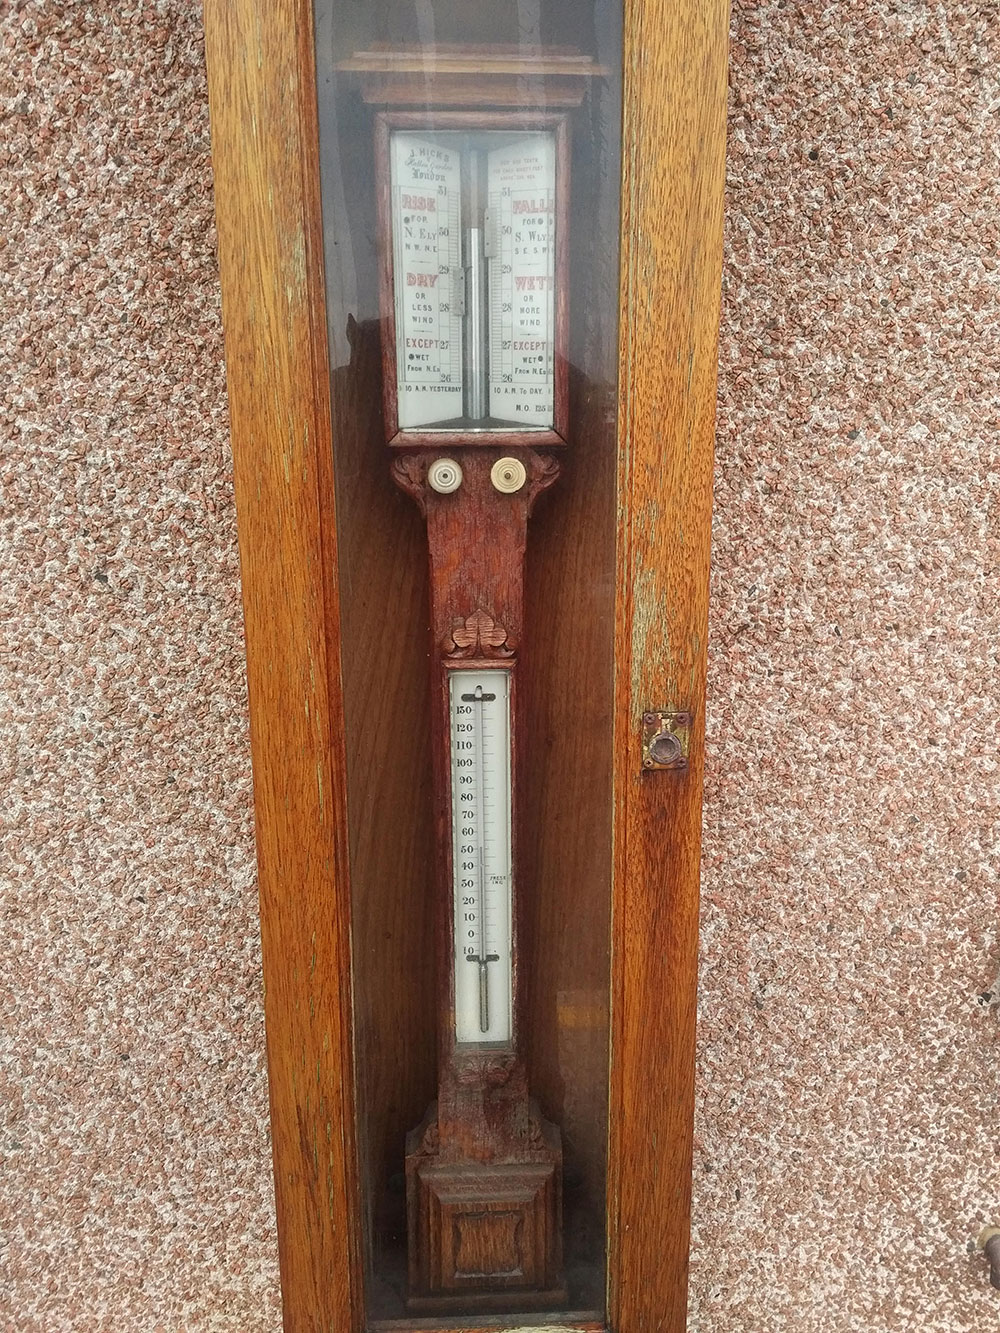 Orkney weather station